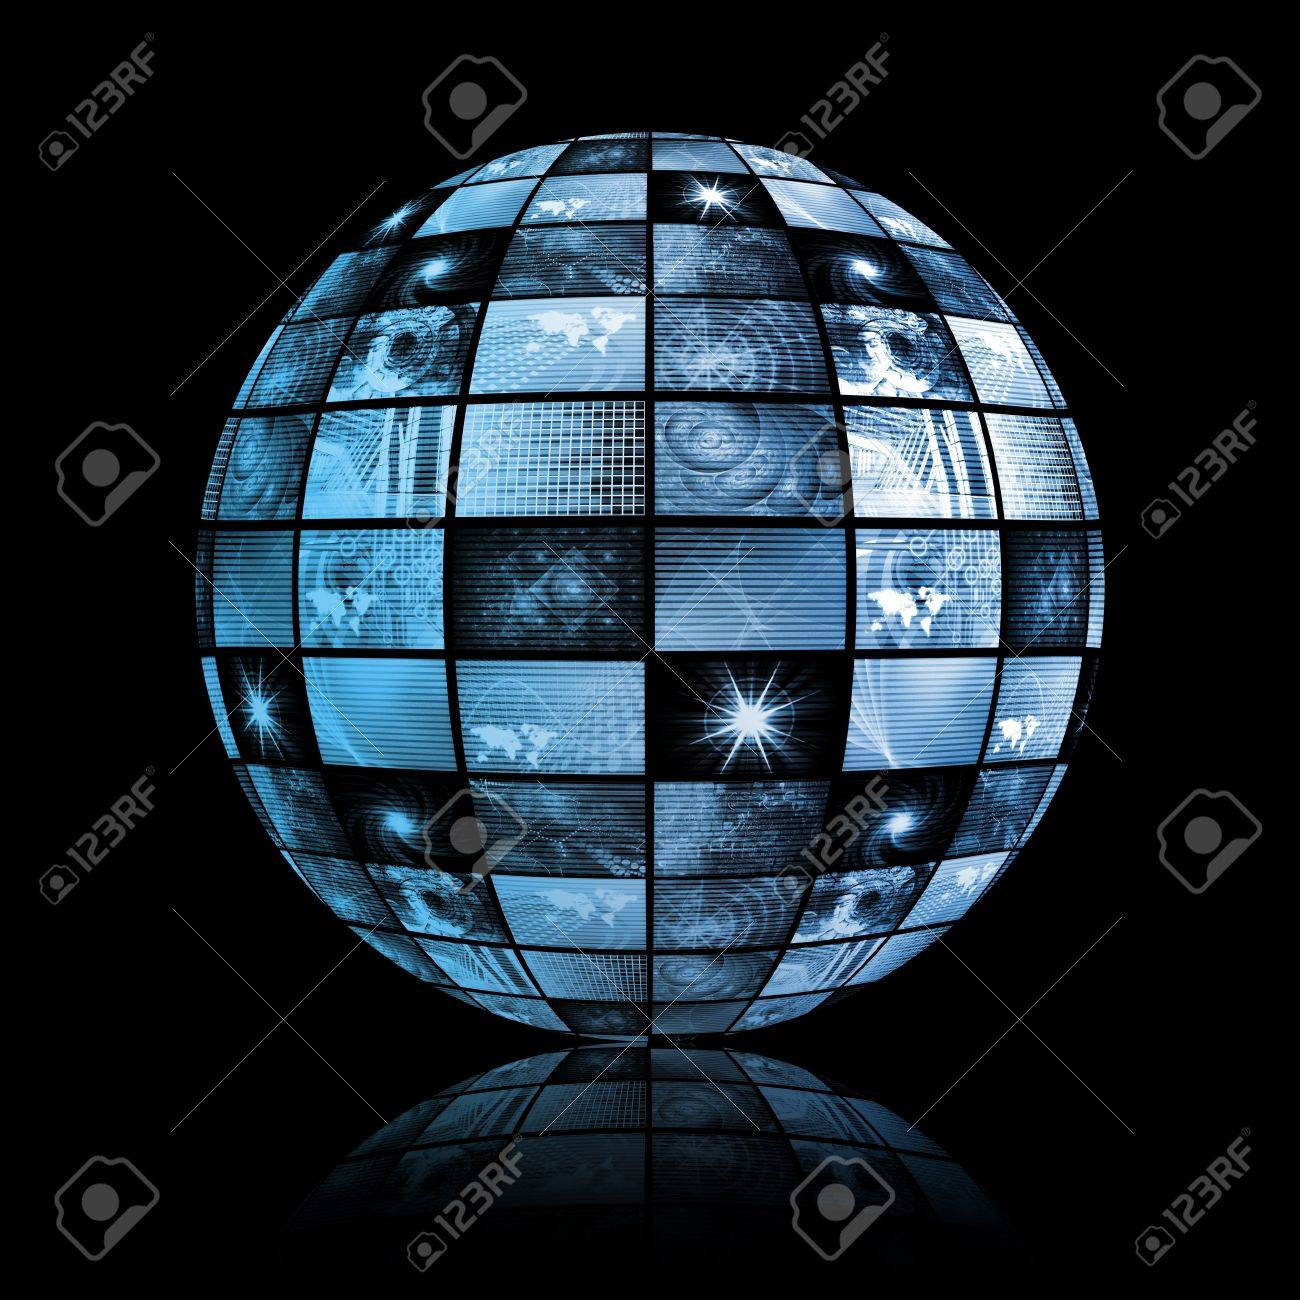 Global Media Technology World Sphere Clip Art Stock Photo - 4155274